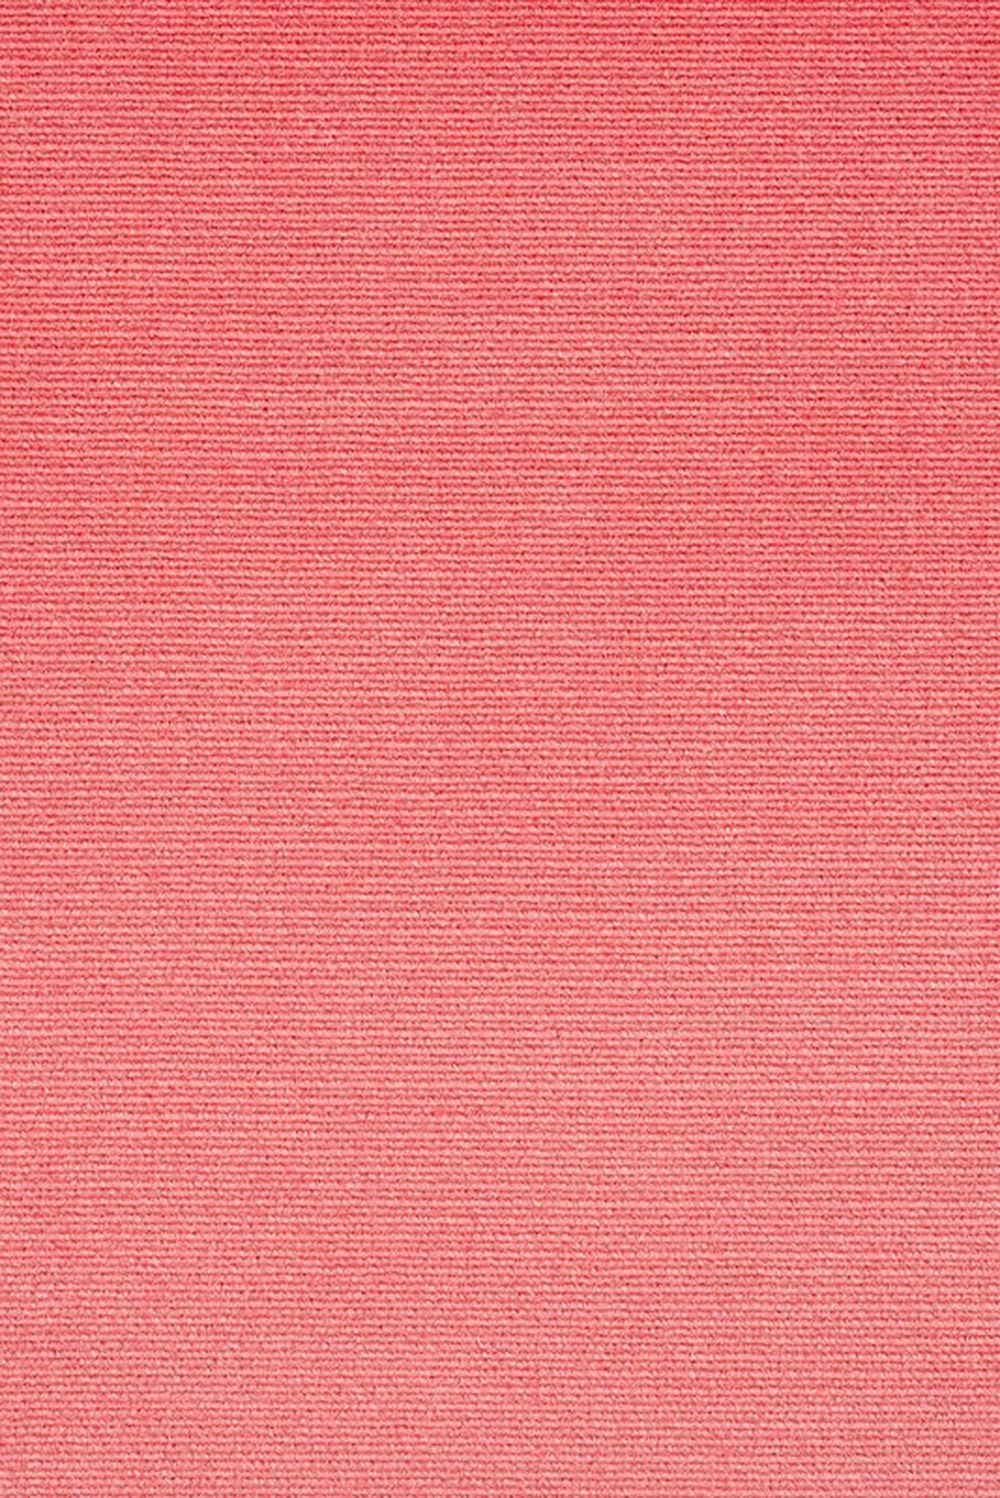 Photo of the fabric South Beach Coral swatch by Mokum. Use for Upholstery Heavy Duty, Accessory. Style of Plain, Velvet